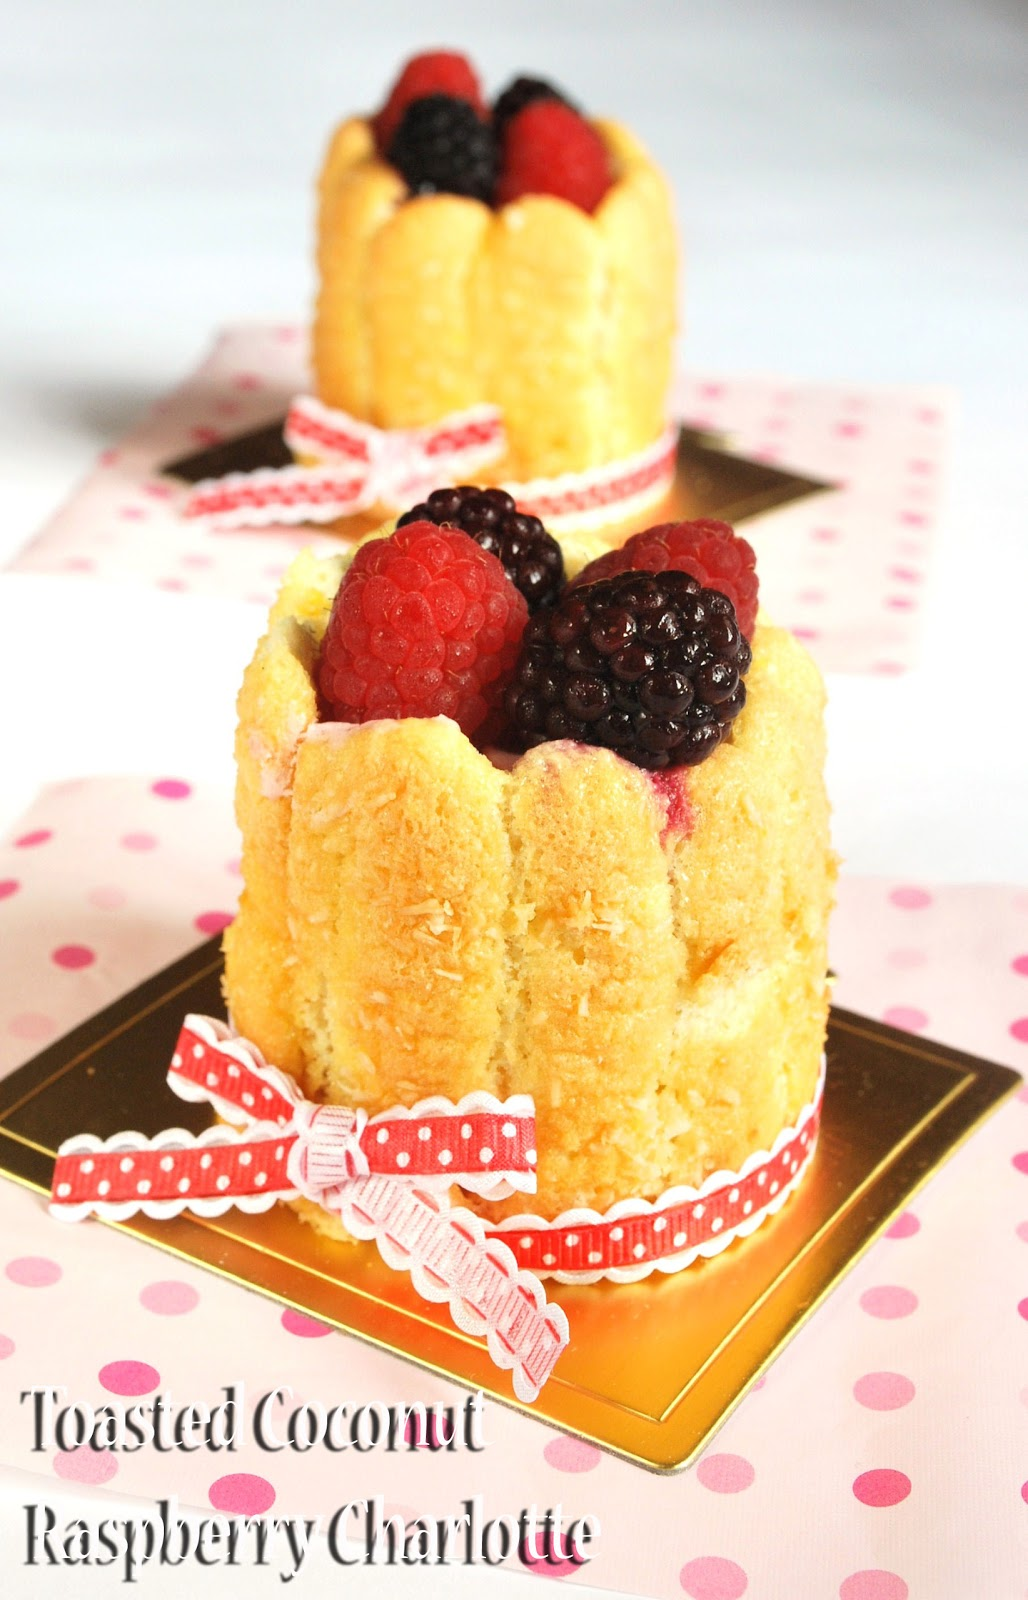 Toasted Coconut And Berries Charlottes Recipe — Dishmaps